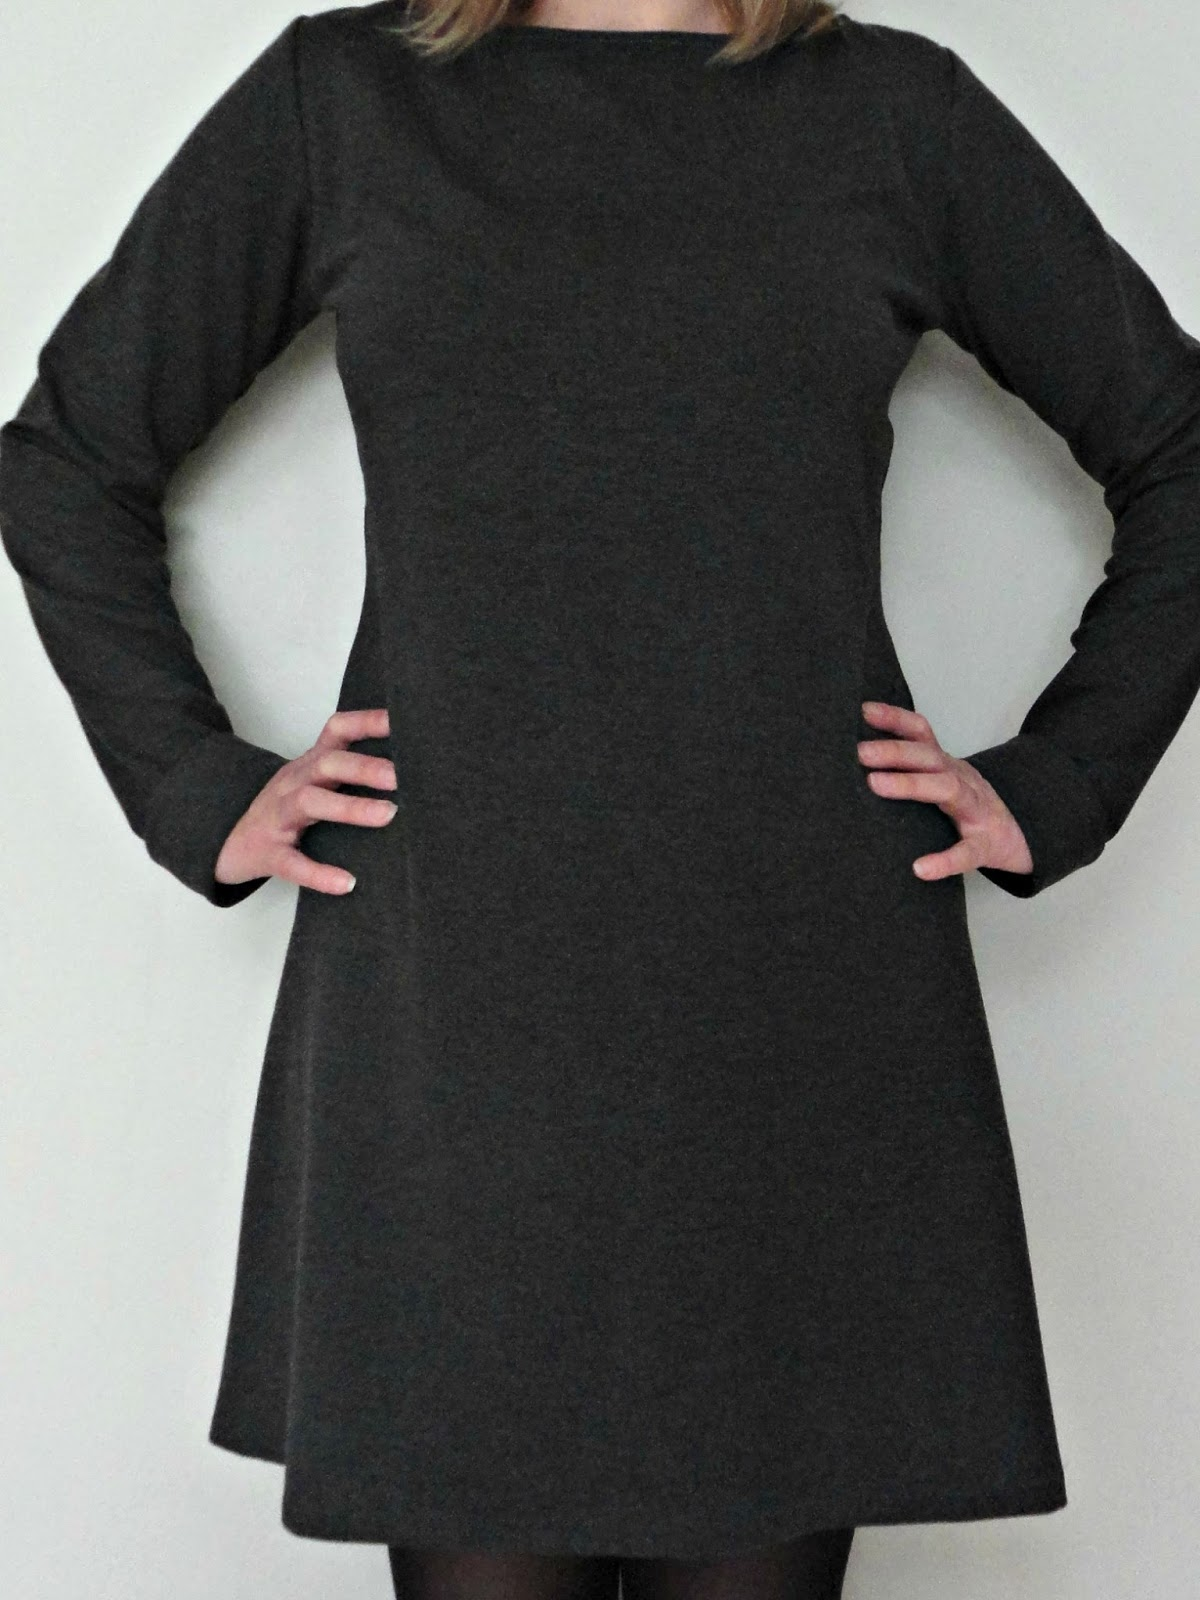 Coco dress - Tilly and the Buttons